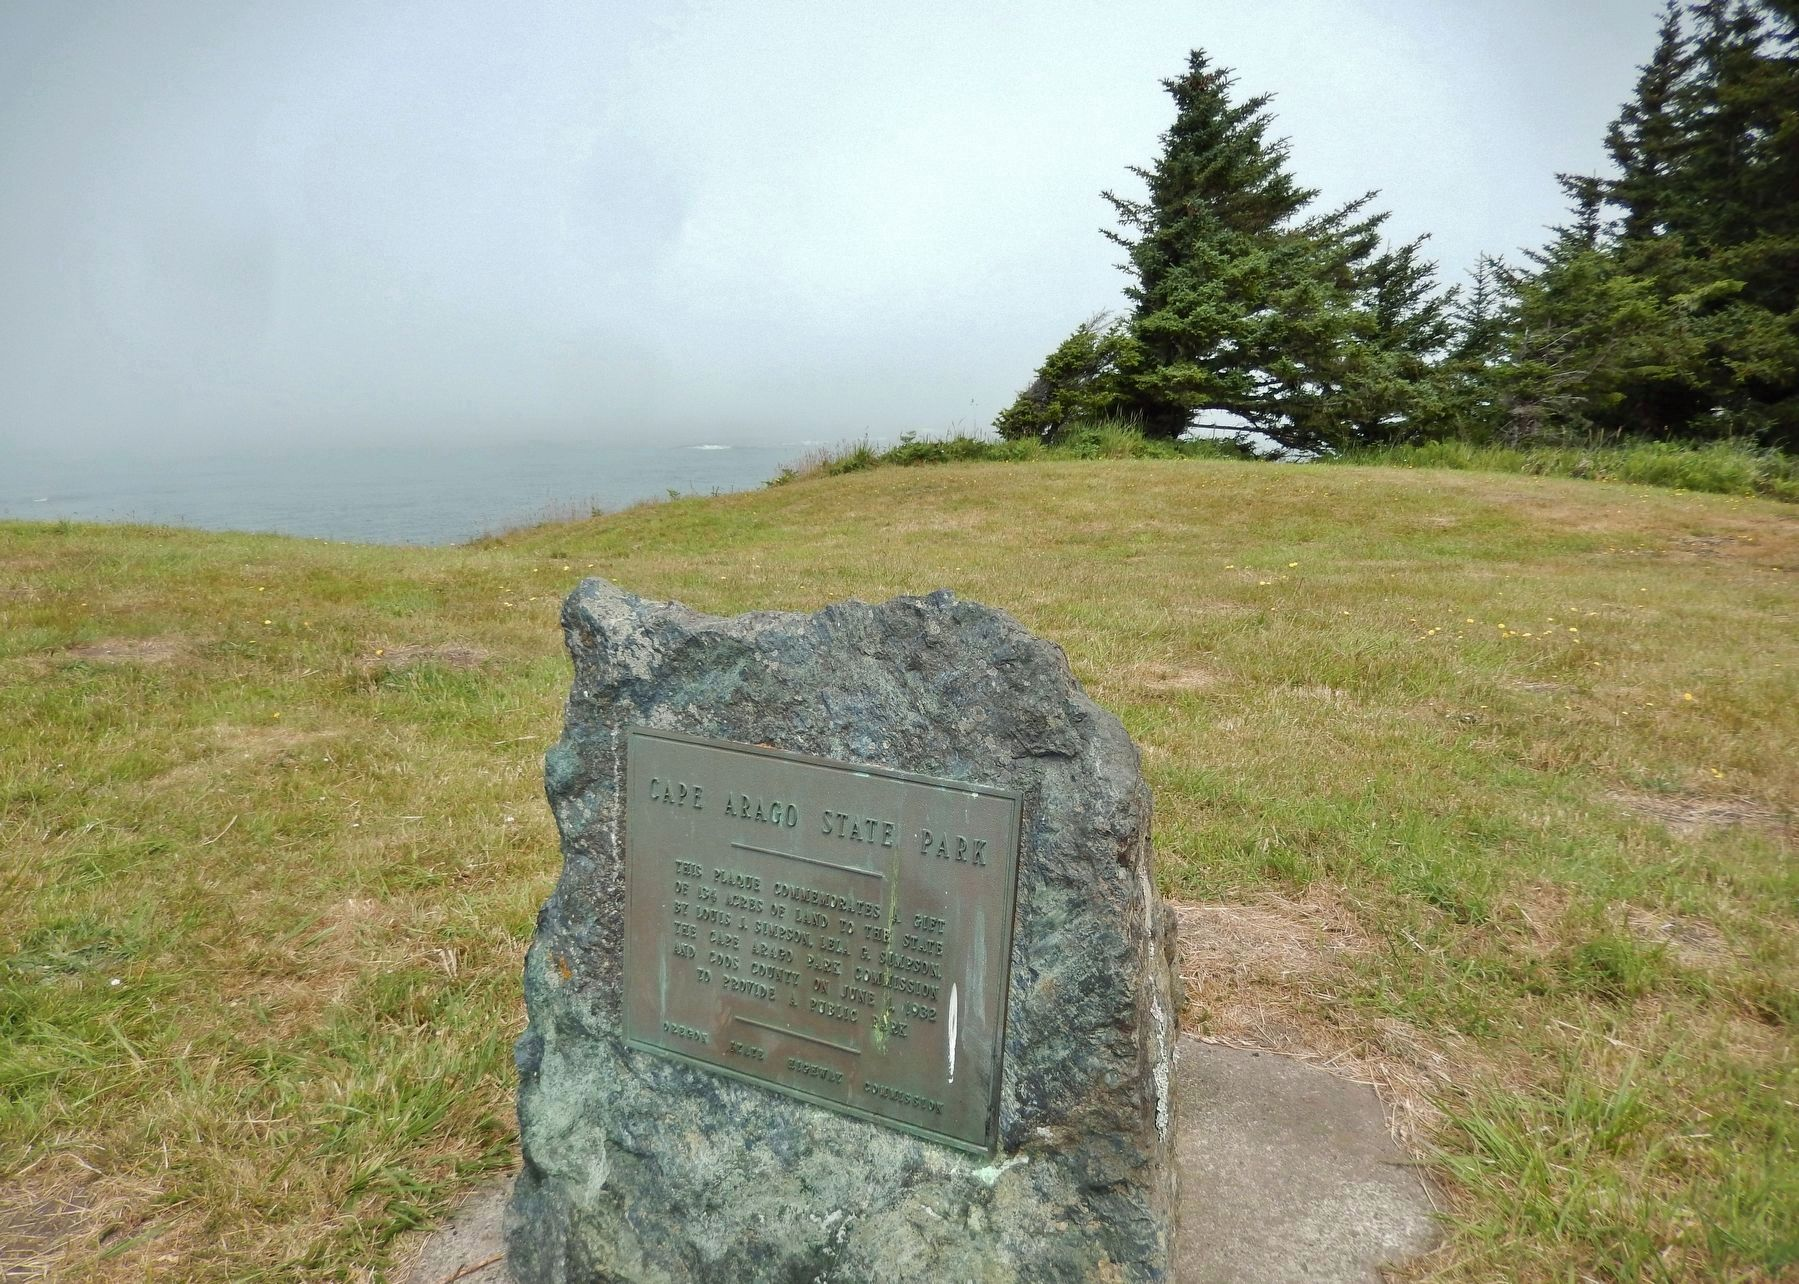 Cape Arago State Park Dedication (<i>near marker</i>) image. Click for full size.